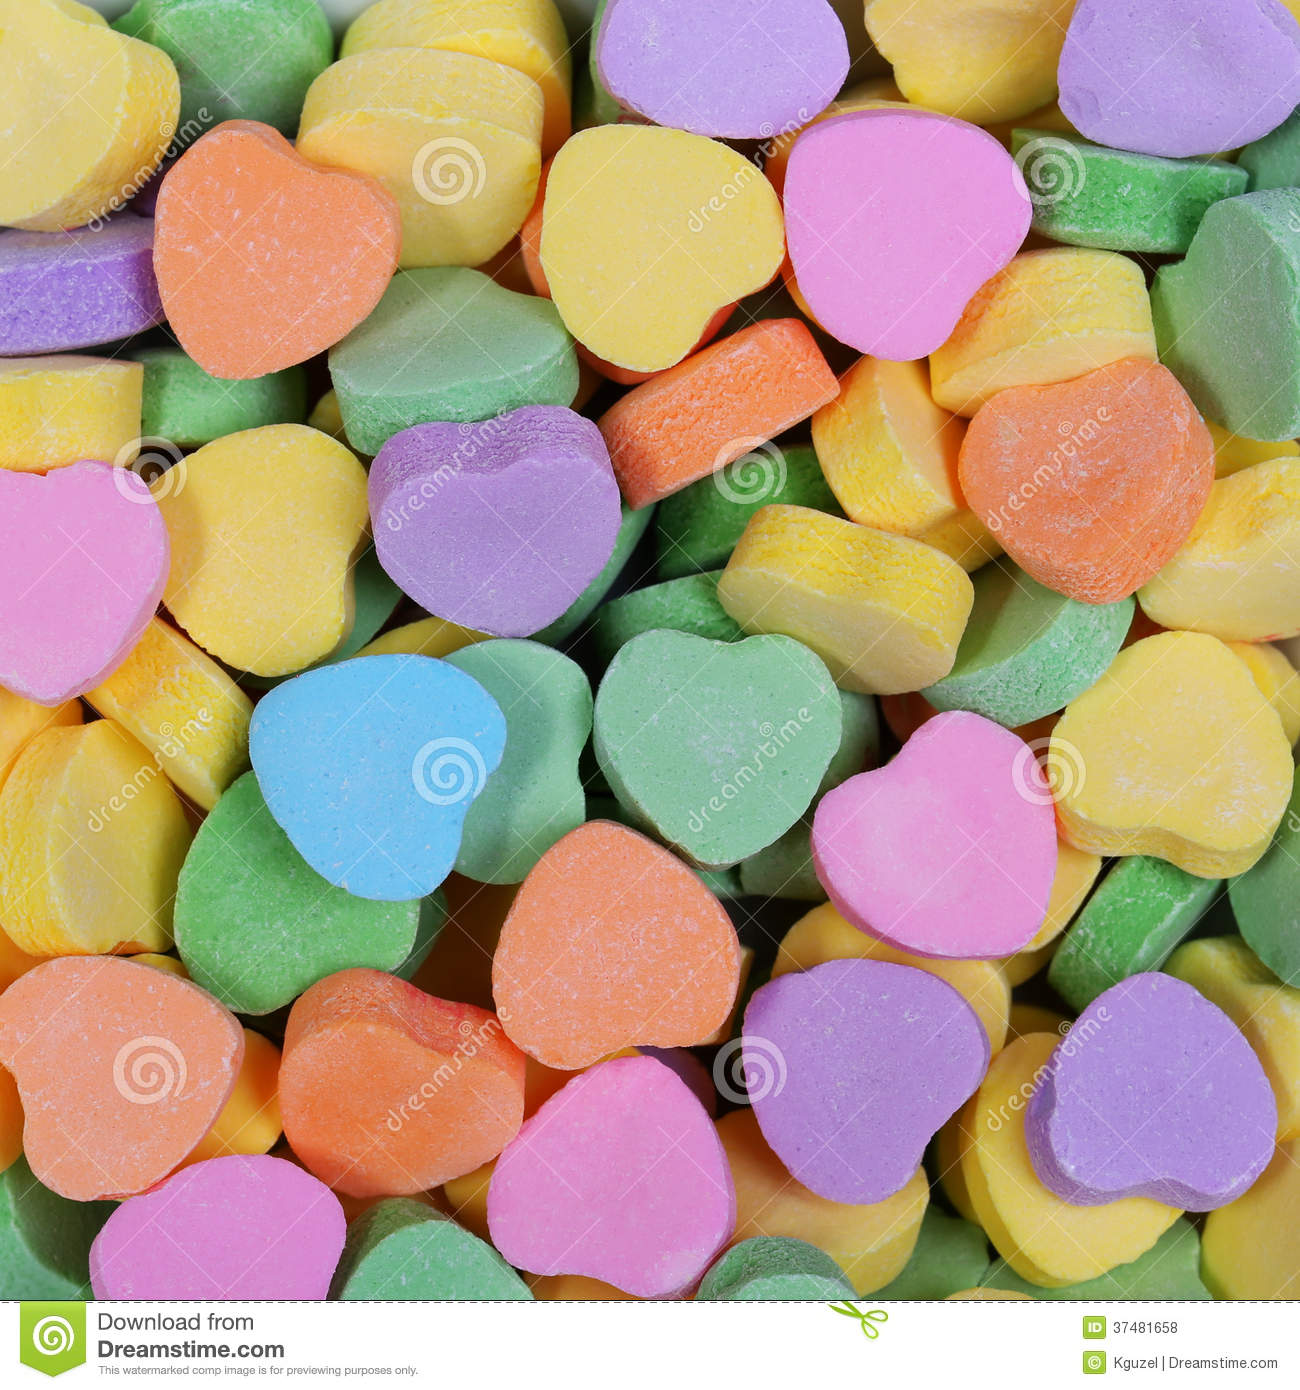 colorful hearts background  sweetheart candy  valentines day royalty free stock photos